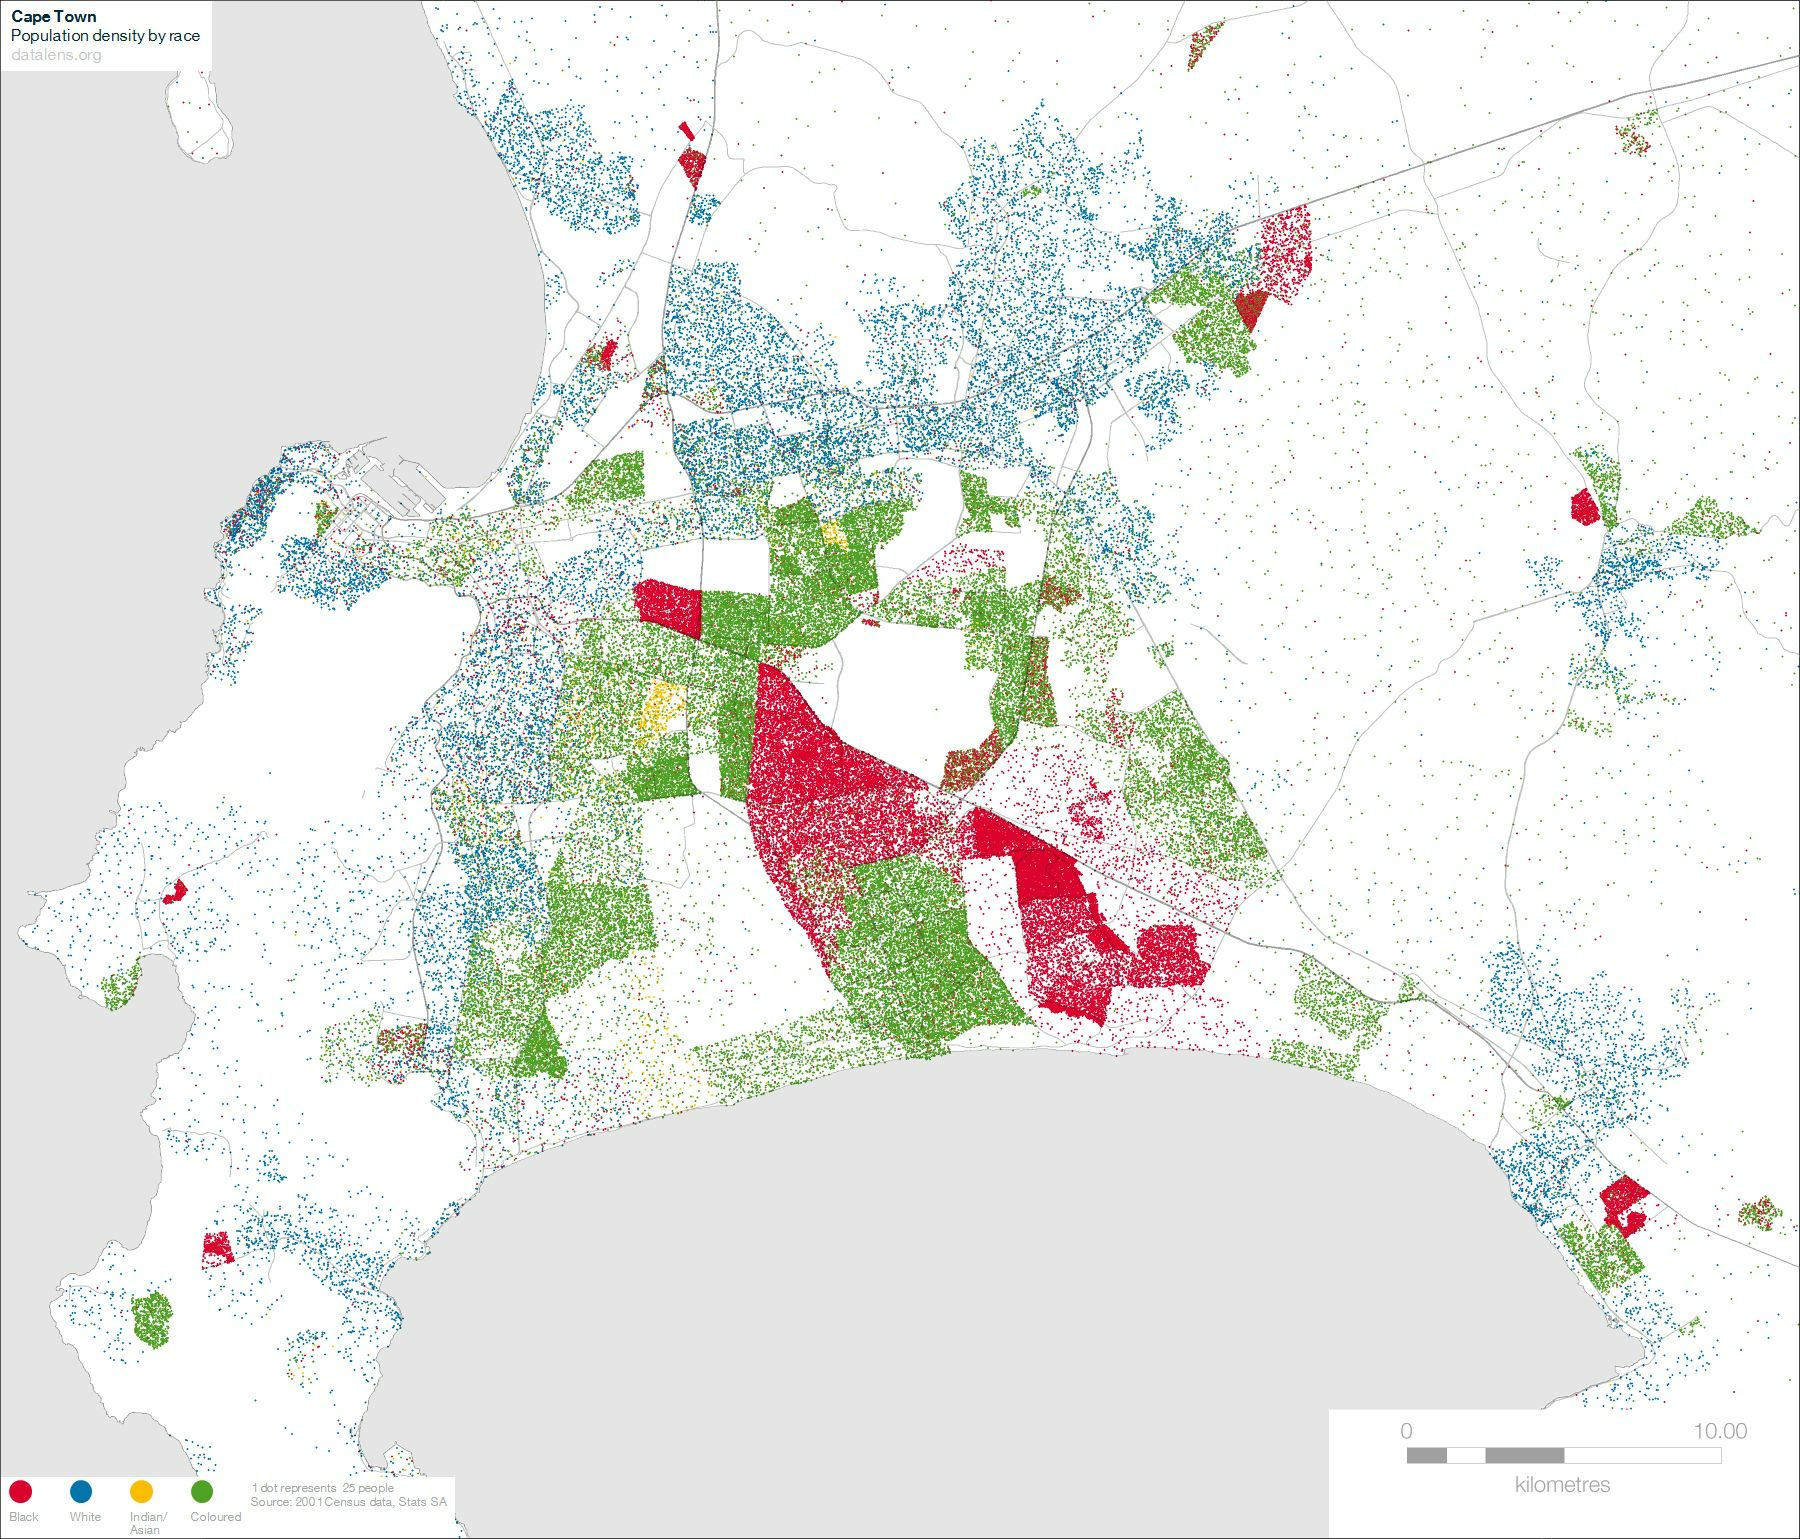 Map Cape Town  Popolation Density by race  South African History